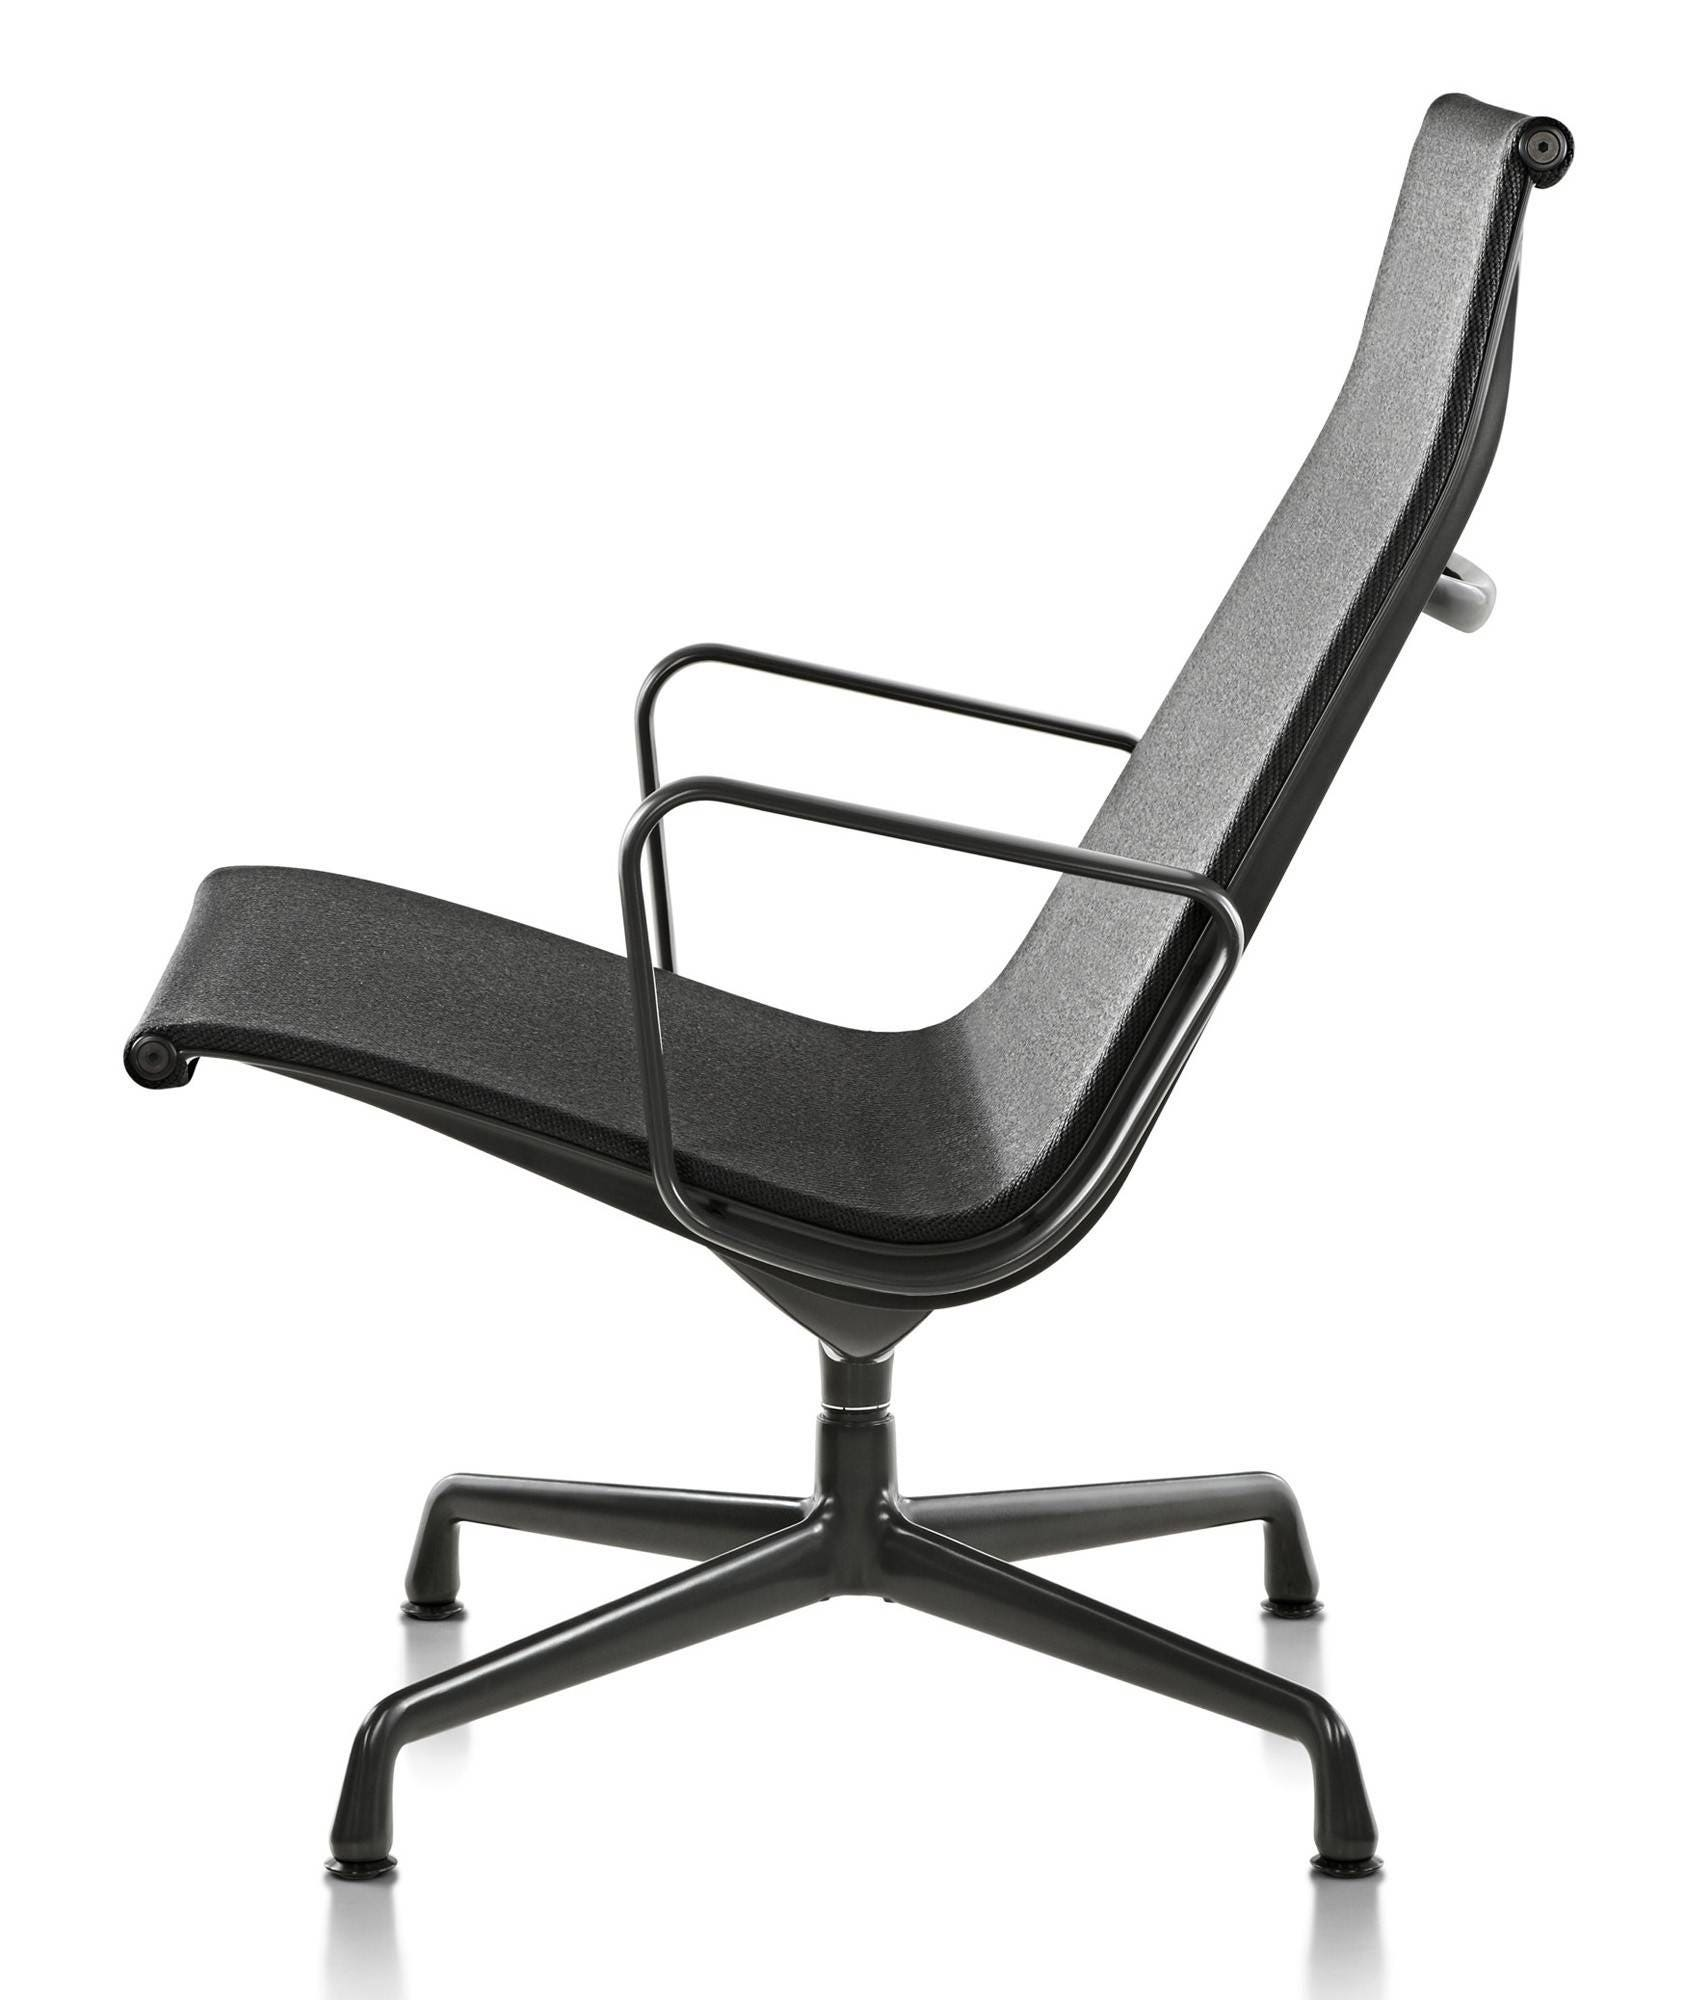 Herman Miller Eames Aluminum Group Lounge Chair Outdoor